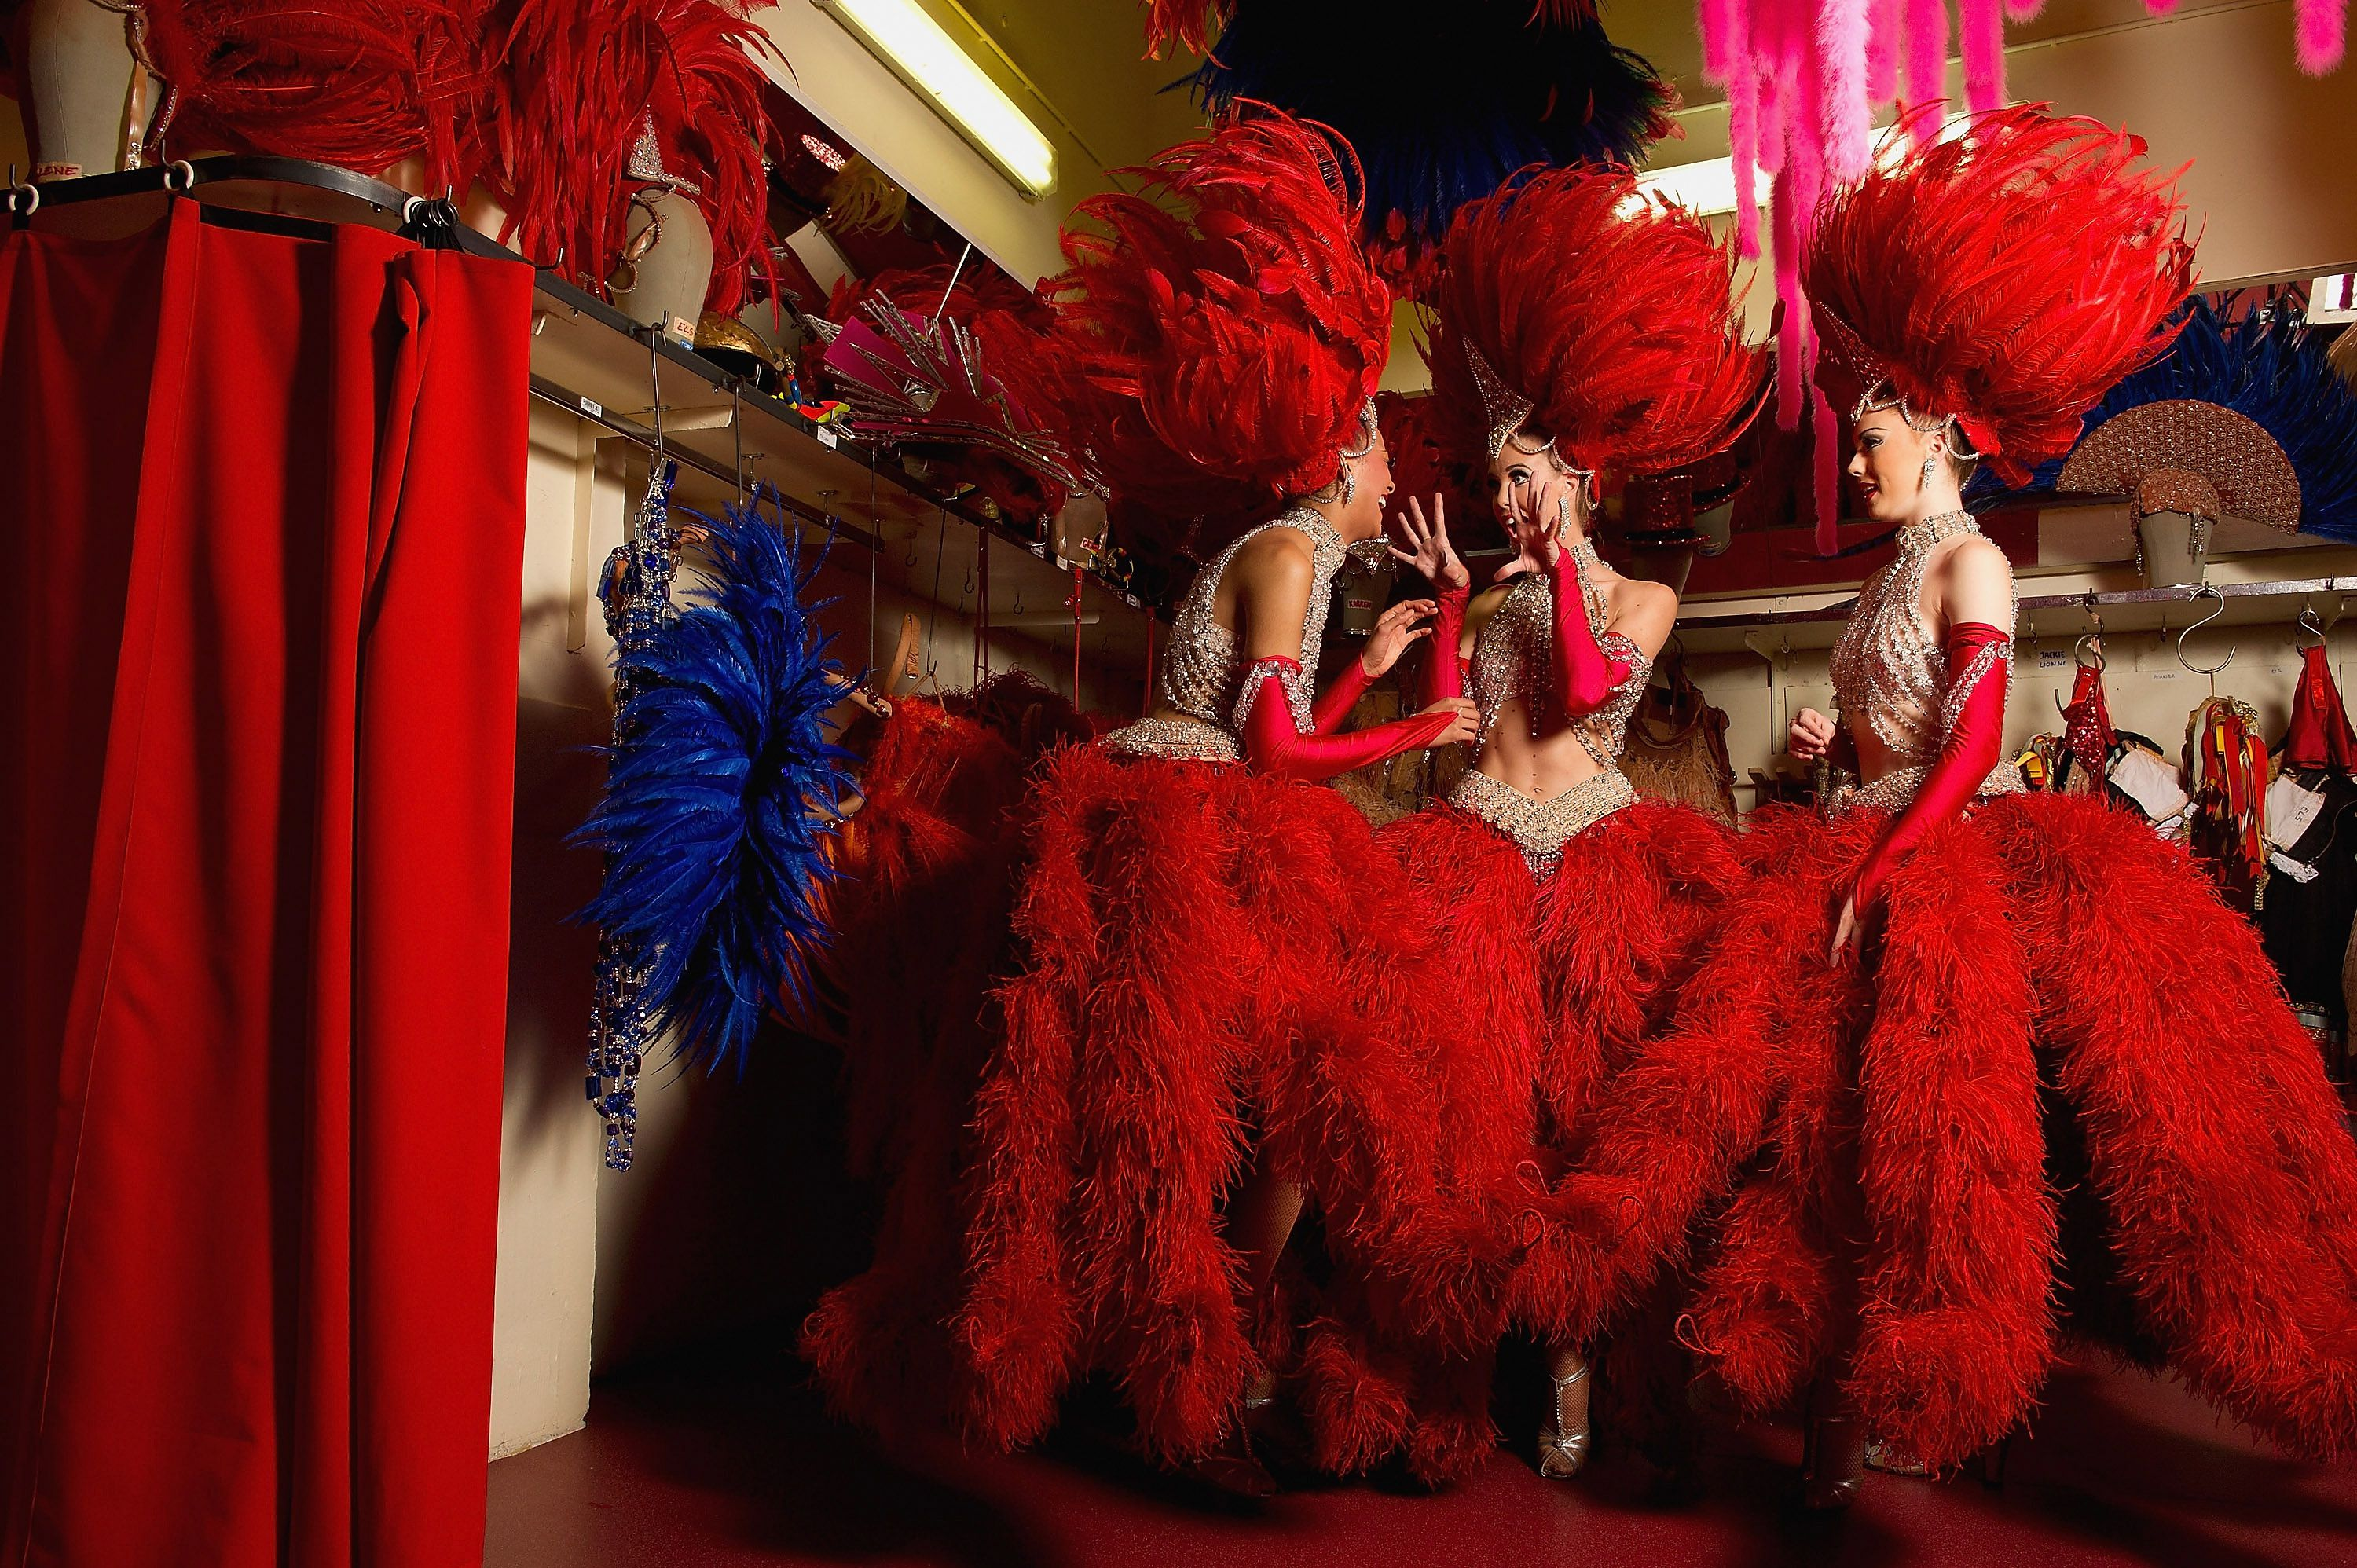 Booking Tickets To The Moulin Rouge